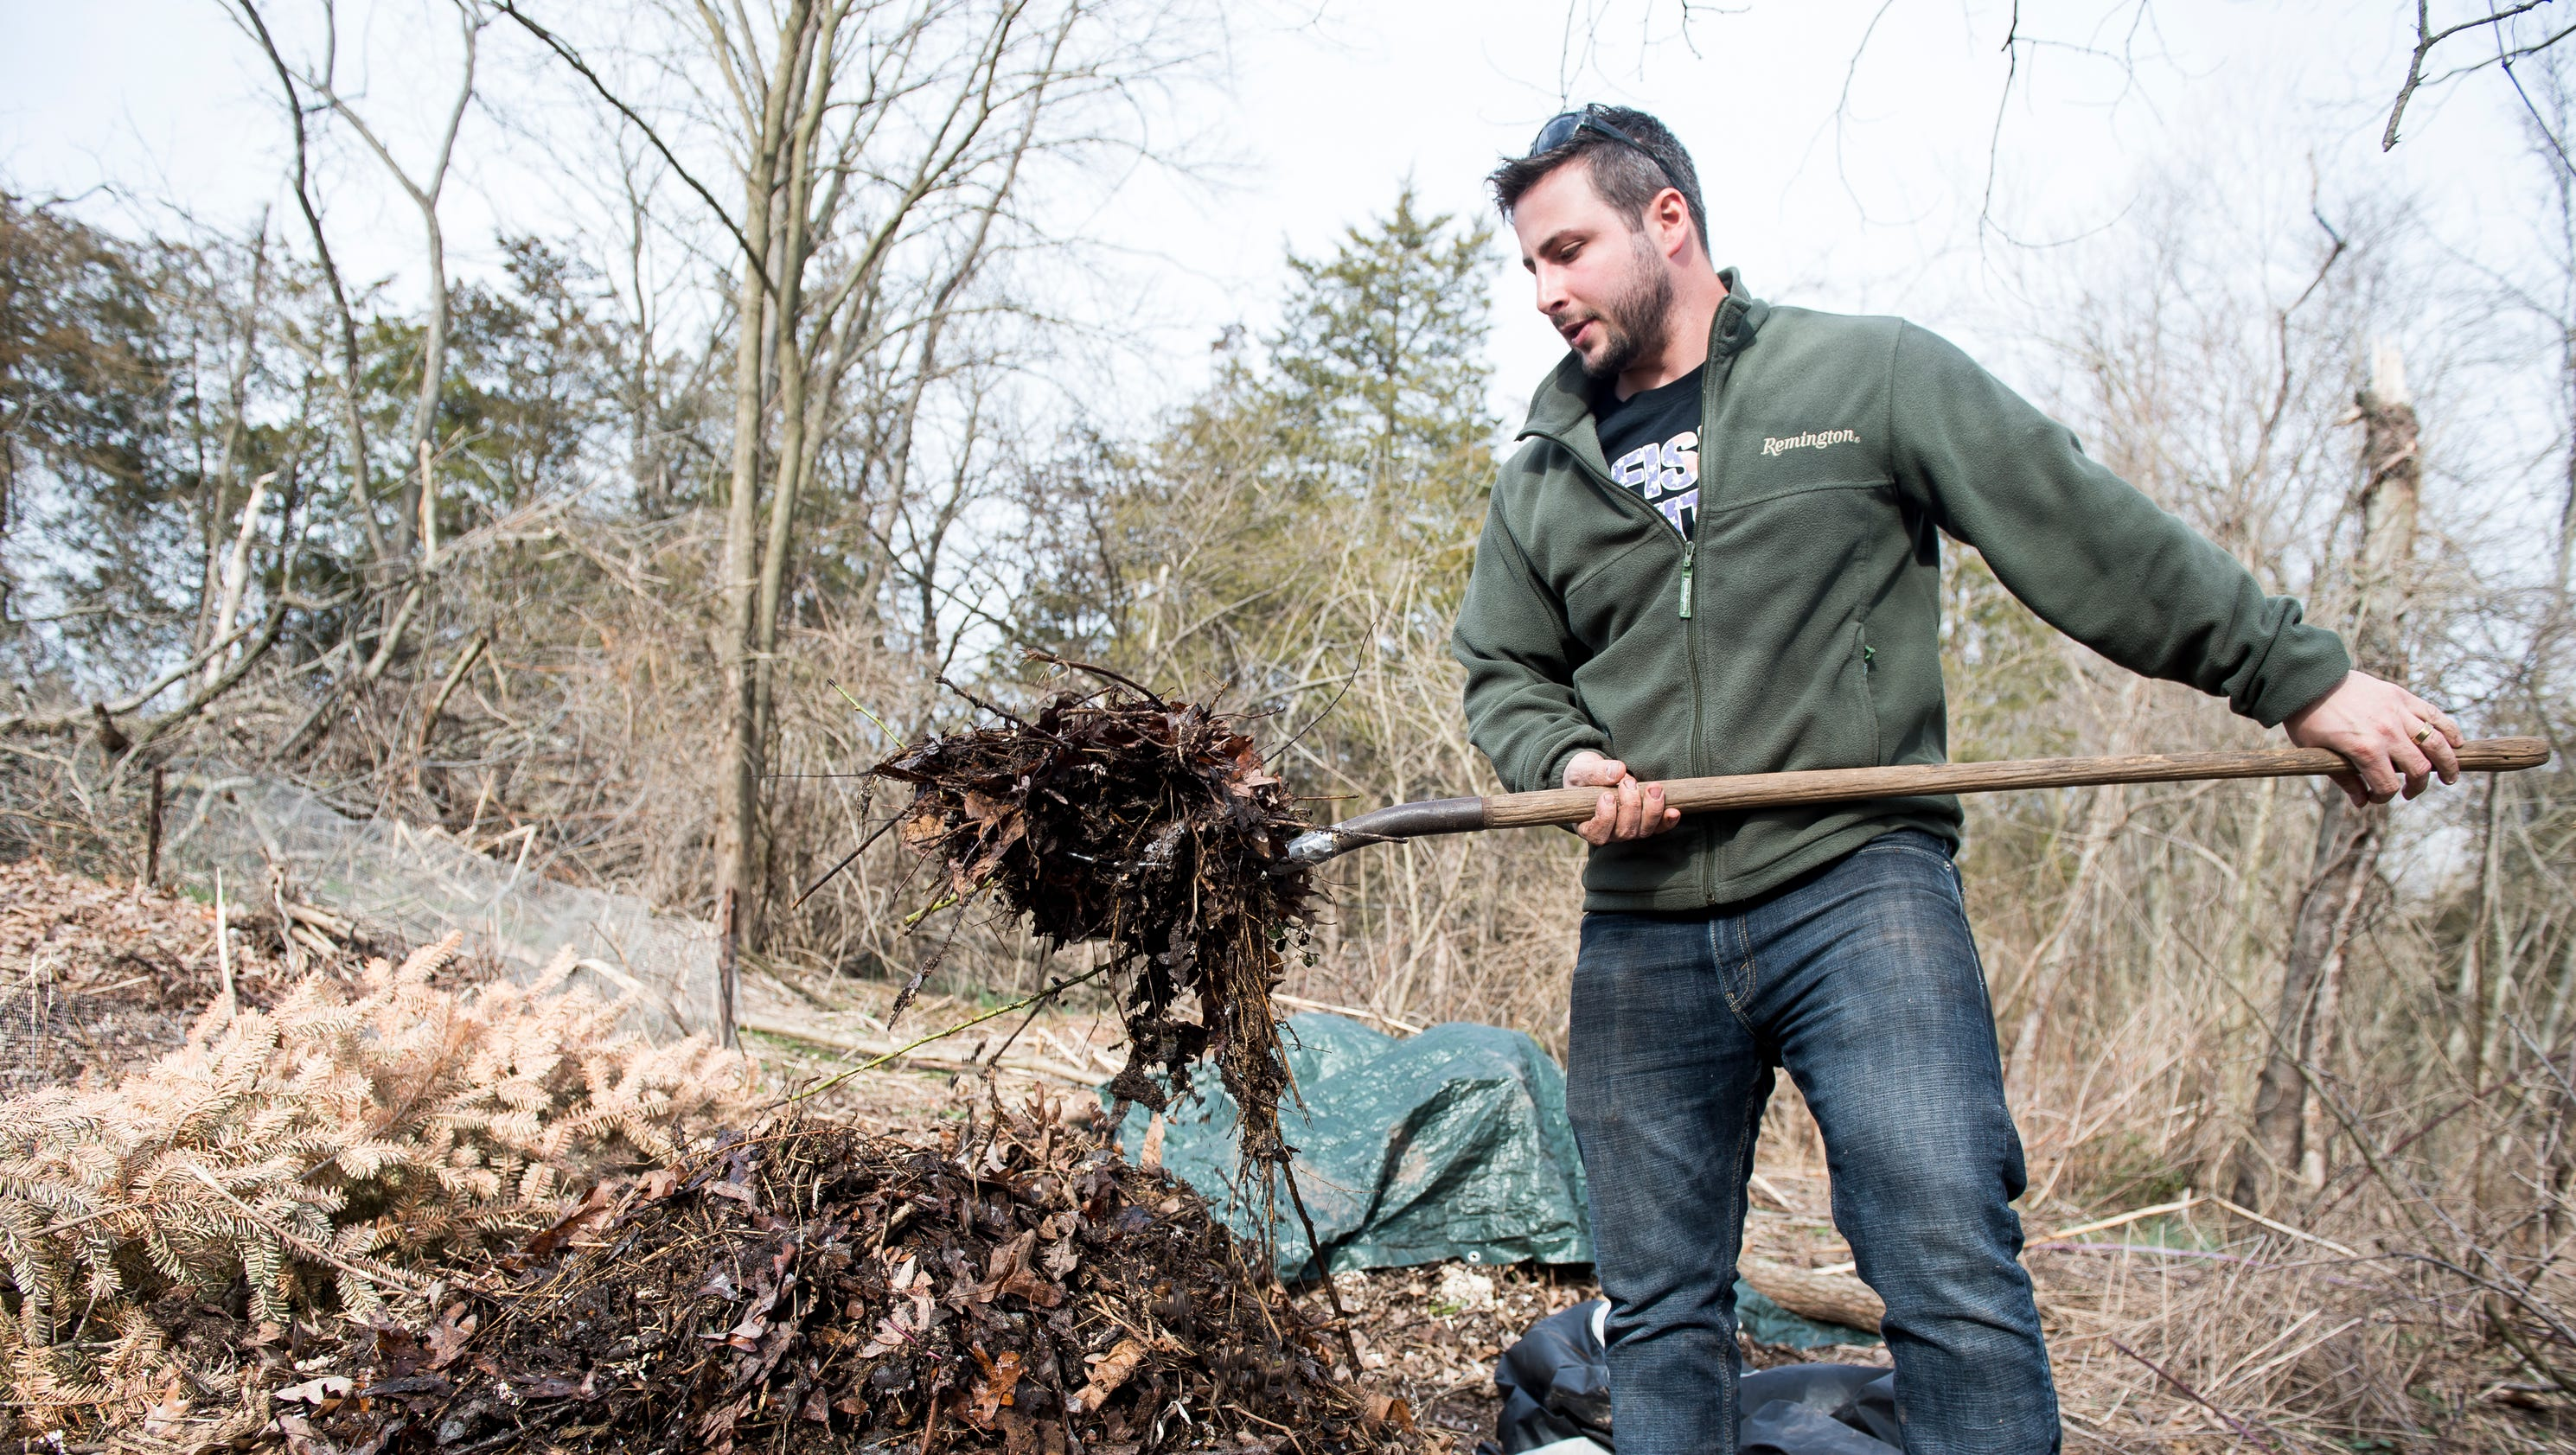 the positive effects of composting The positive influence of composted biochar on plant growth and soil properties suggests that composting is a good way to overcome biochar's inherent nutrient deficiency, making it a suitable .